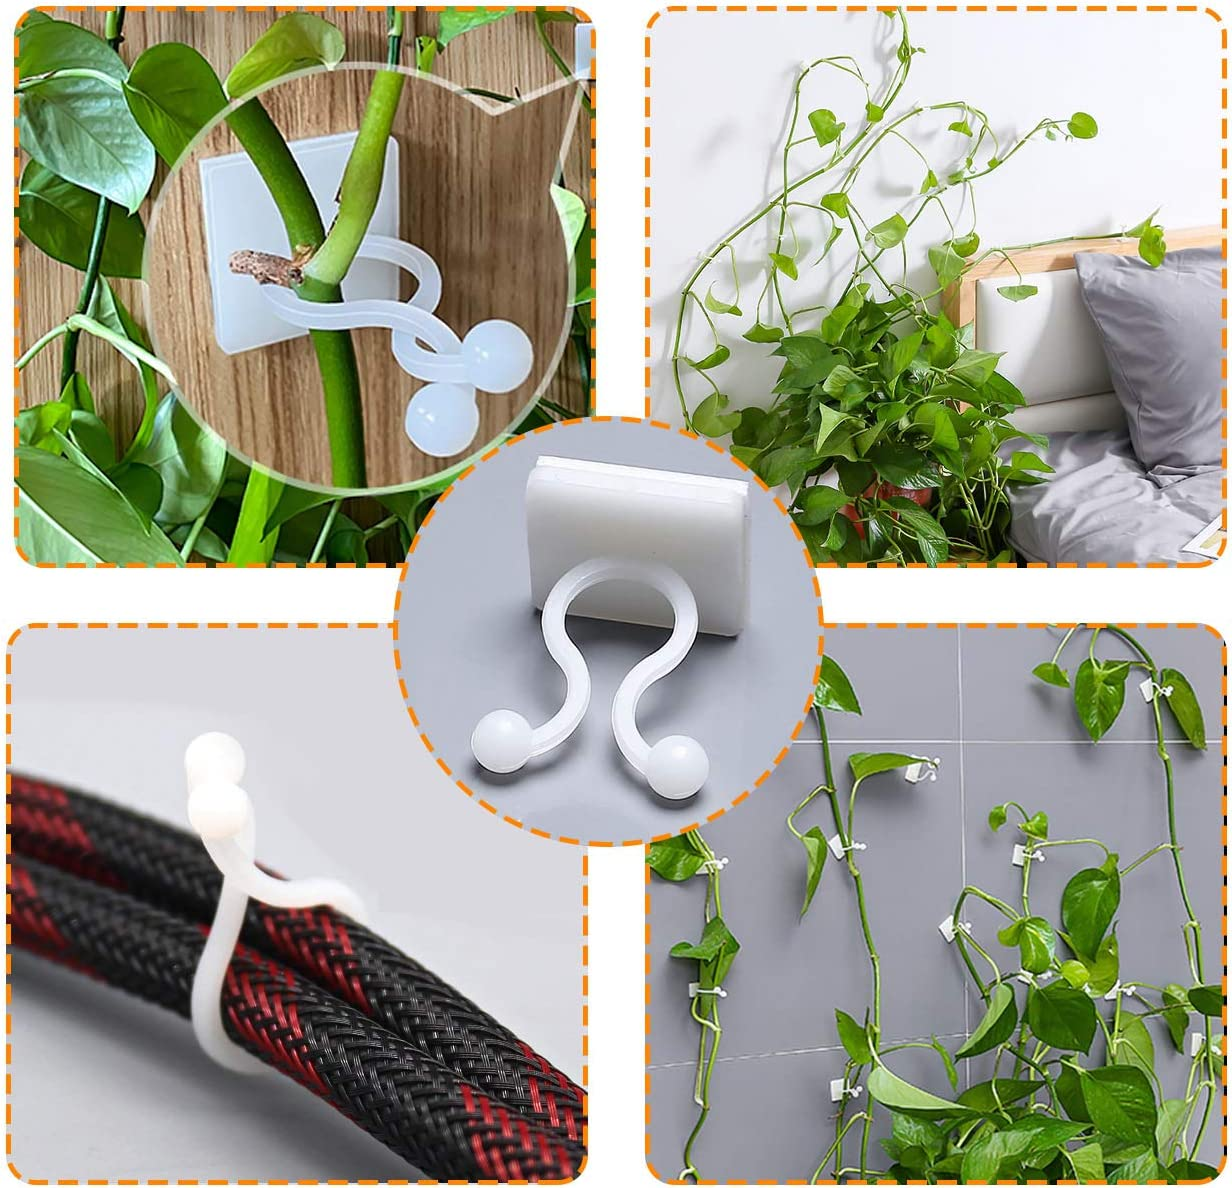 S-100pcs Plant Clips,PHLSTYLE Plant Climbing Wall Clip Traceless Invisible Self-Adhesive Plant Hook for Vines Climbing Wall Fixture Holder